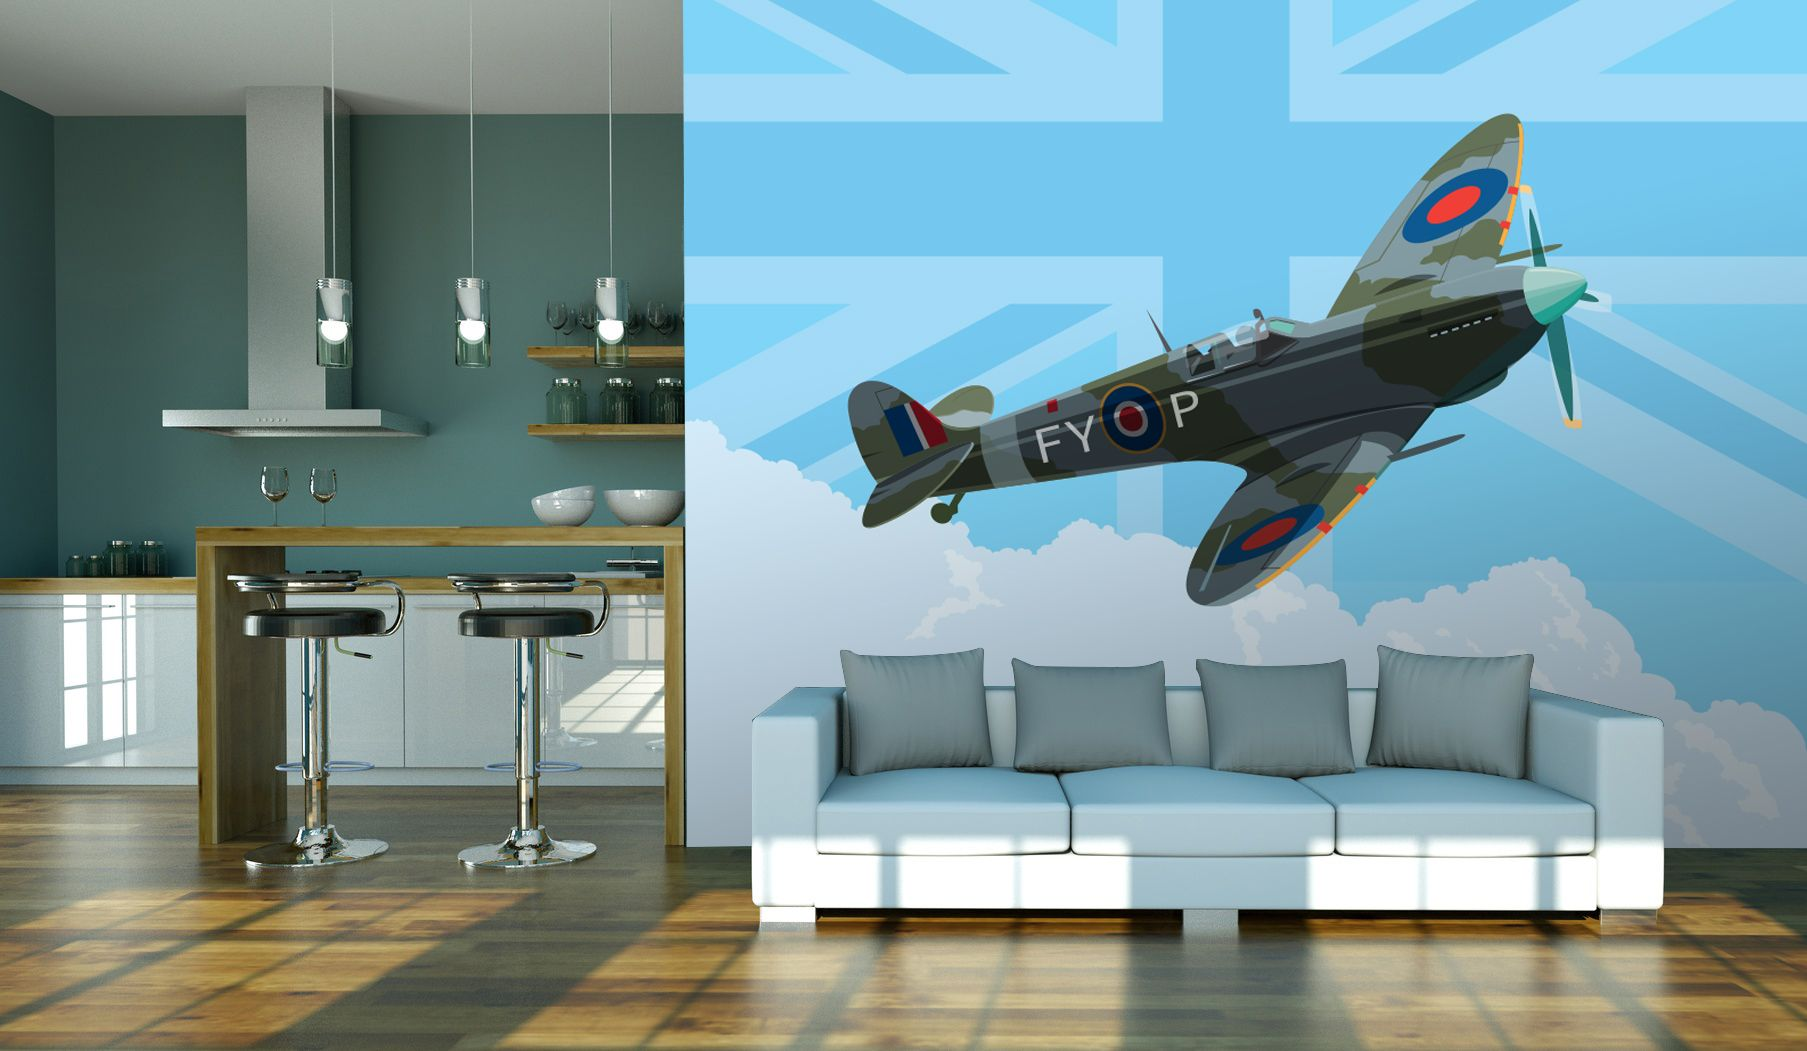 Spitfire illusration by Kevin Williamson